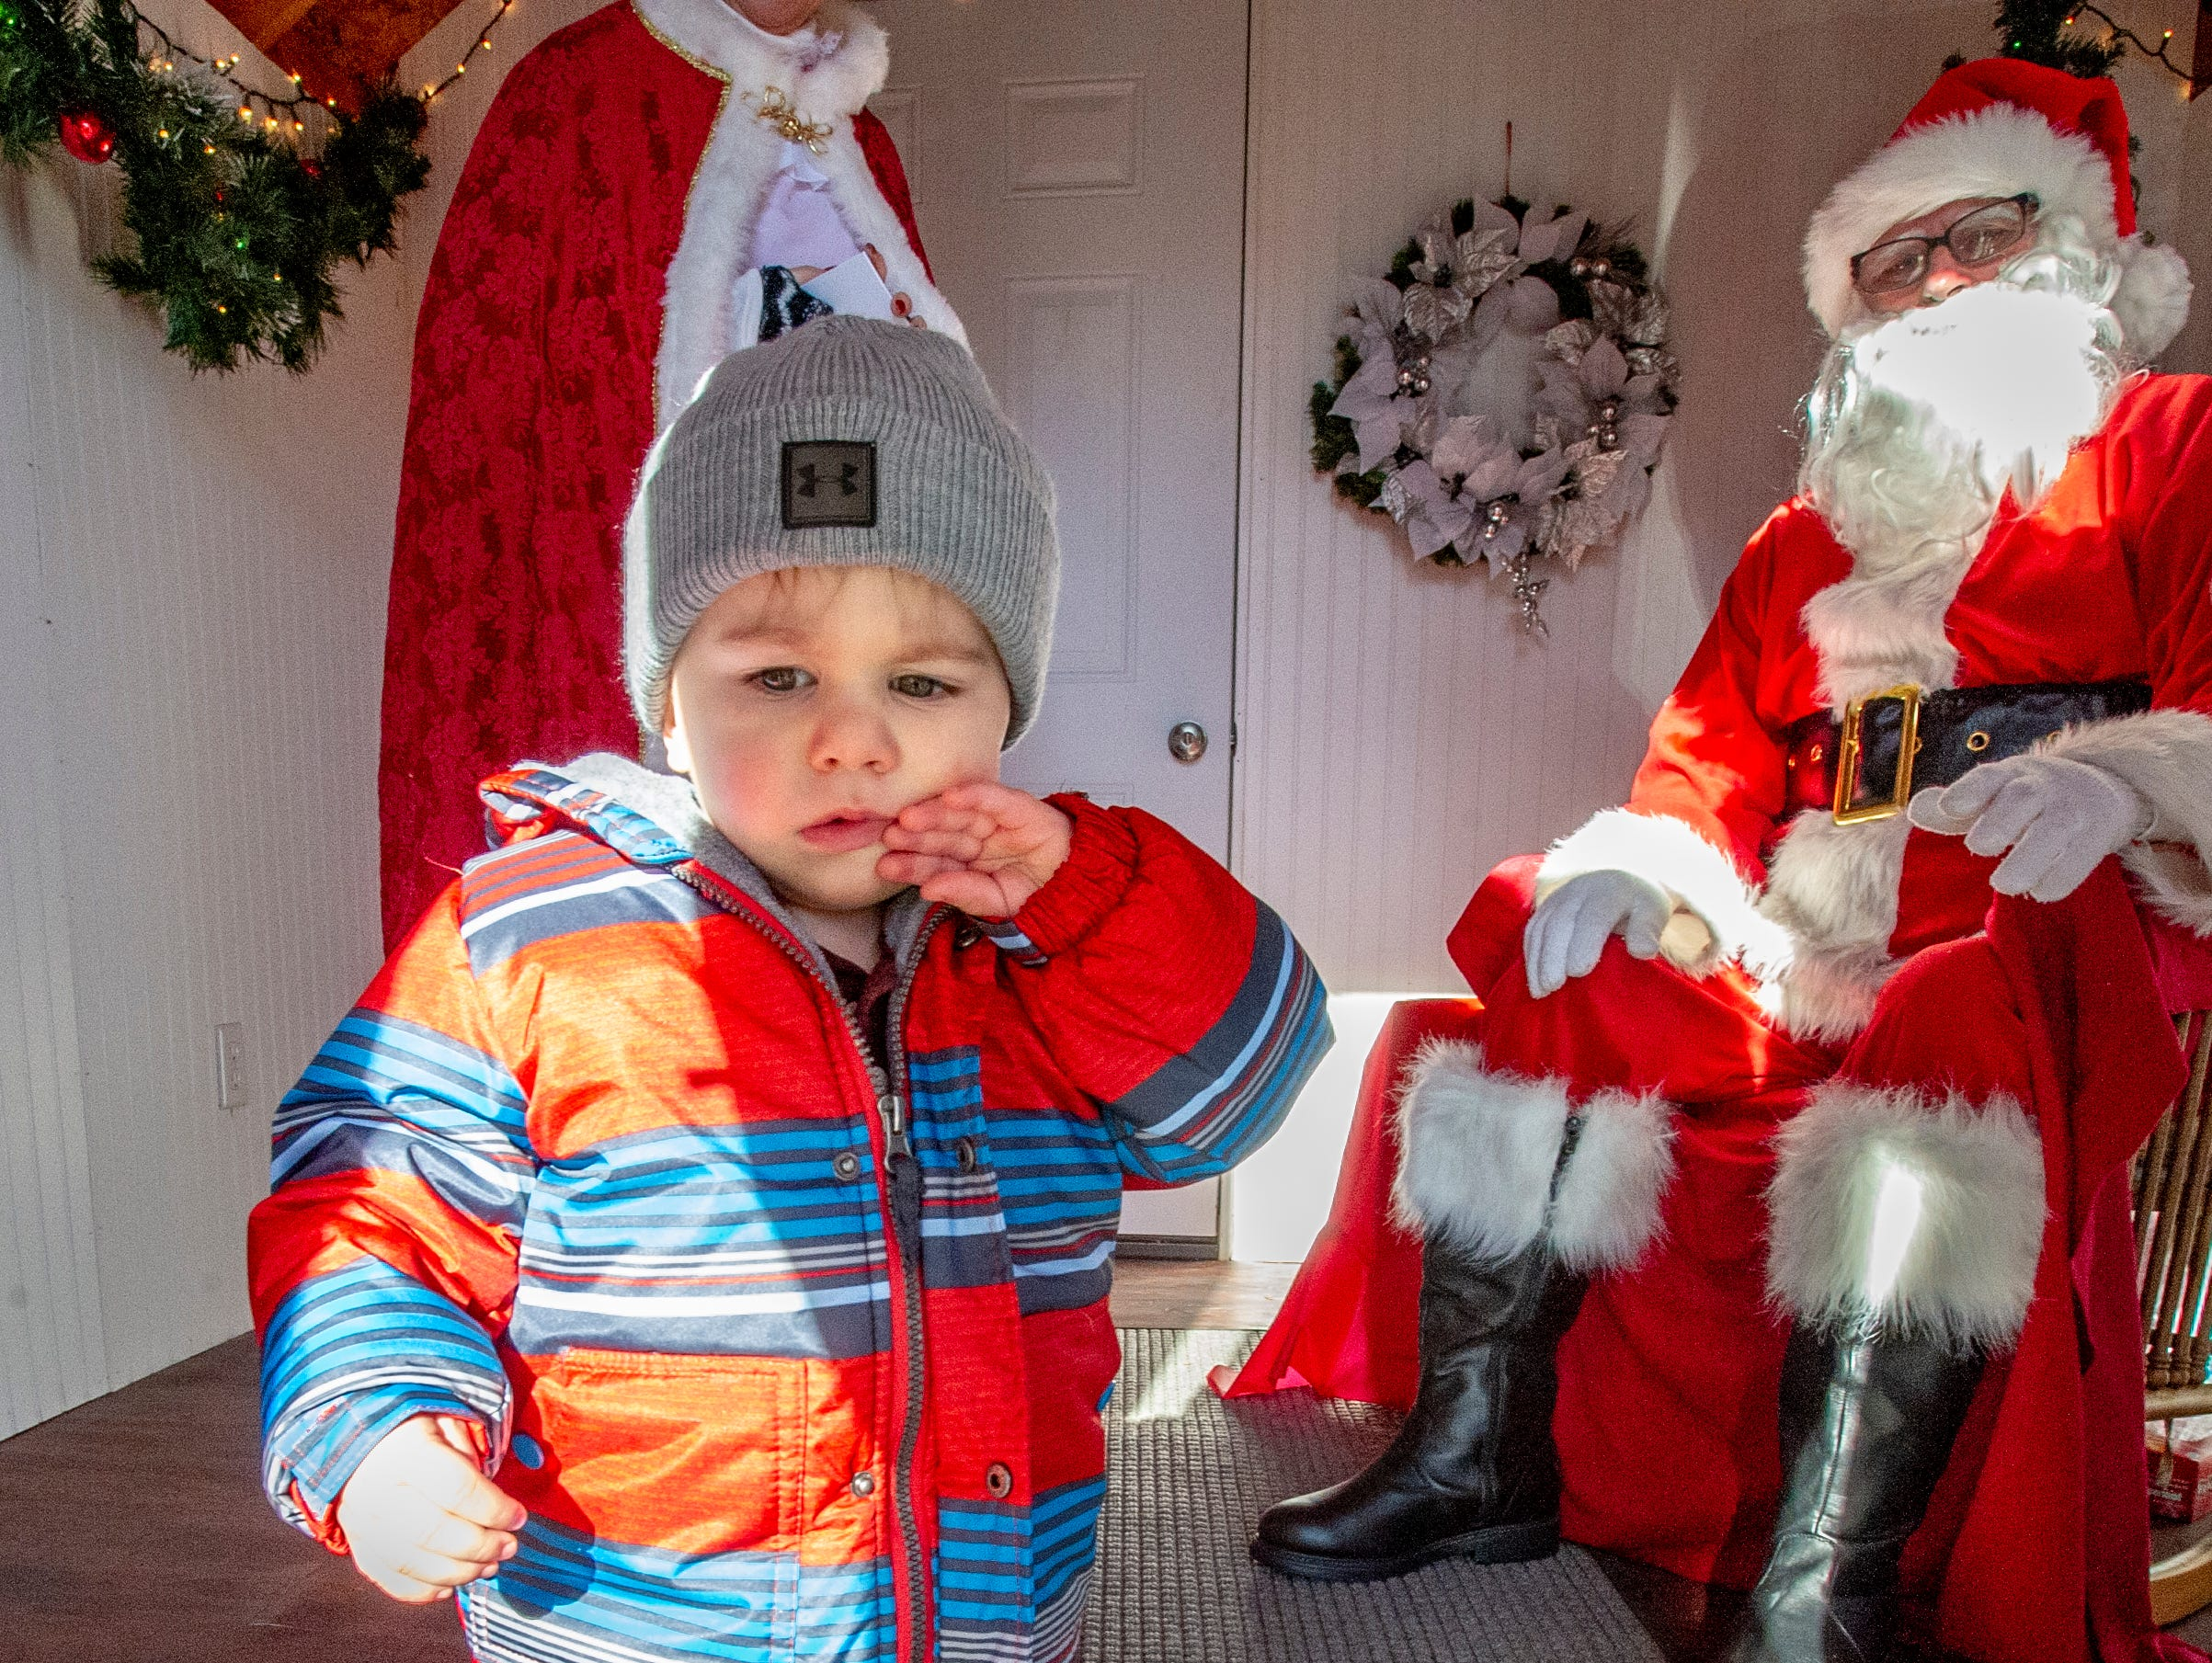 Killian Leach is not convinced he wants to meet Santa at the Santa House in downtown Indianola Nov. 24, 2018.